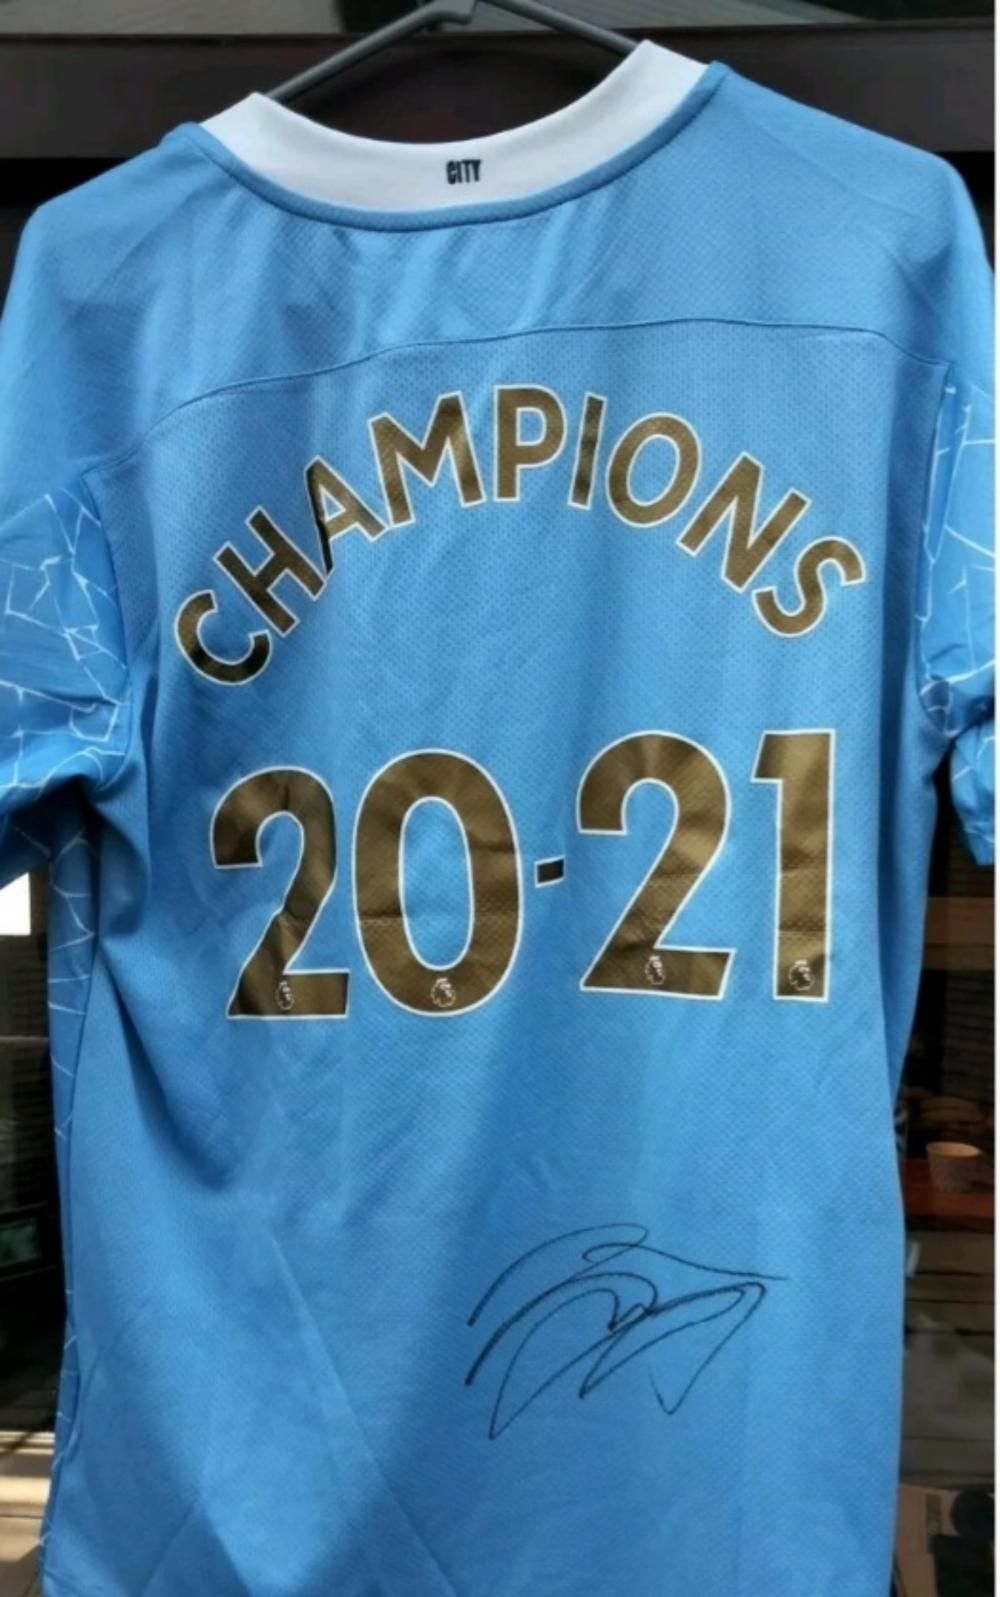 Lot 70 - Oleksandr Zinchenko - Signed Manchester City Football Shirt - direct from the Club. 2010 - 2011 Champions on the back of the shirt.